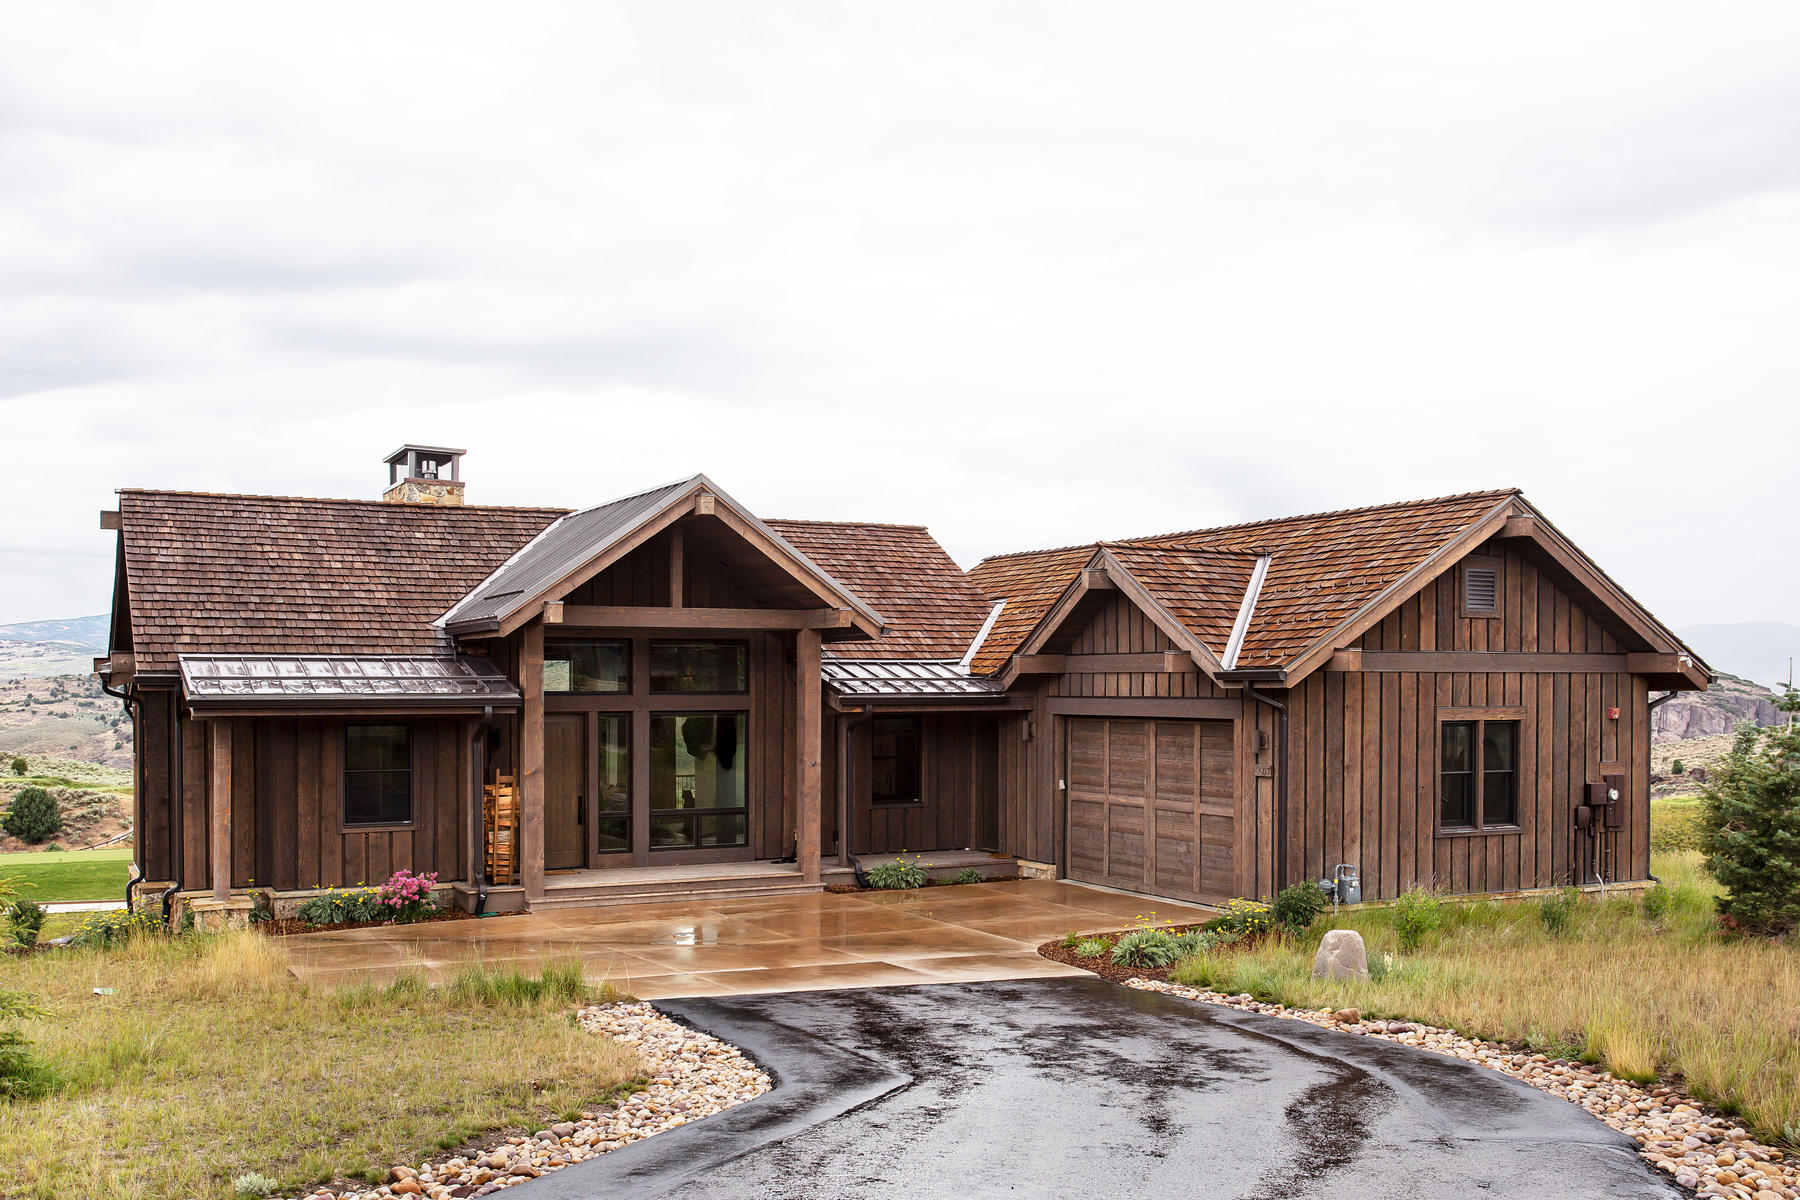 Single Family Homes for Active at Incredible Golf Course Views 6607 E Broken Stick Ct Heber, Utah 84032 United States